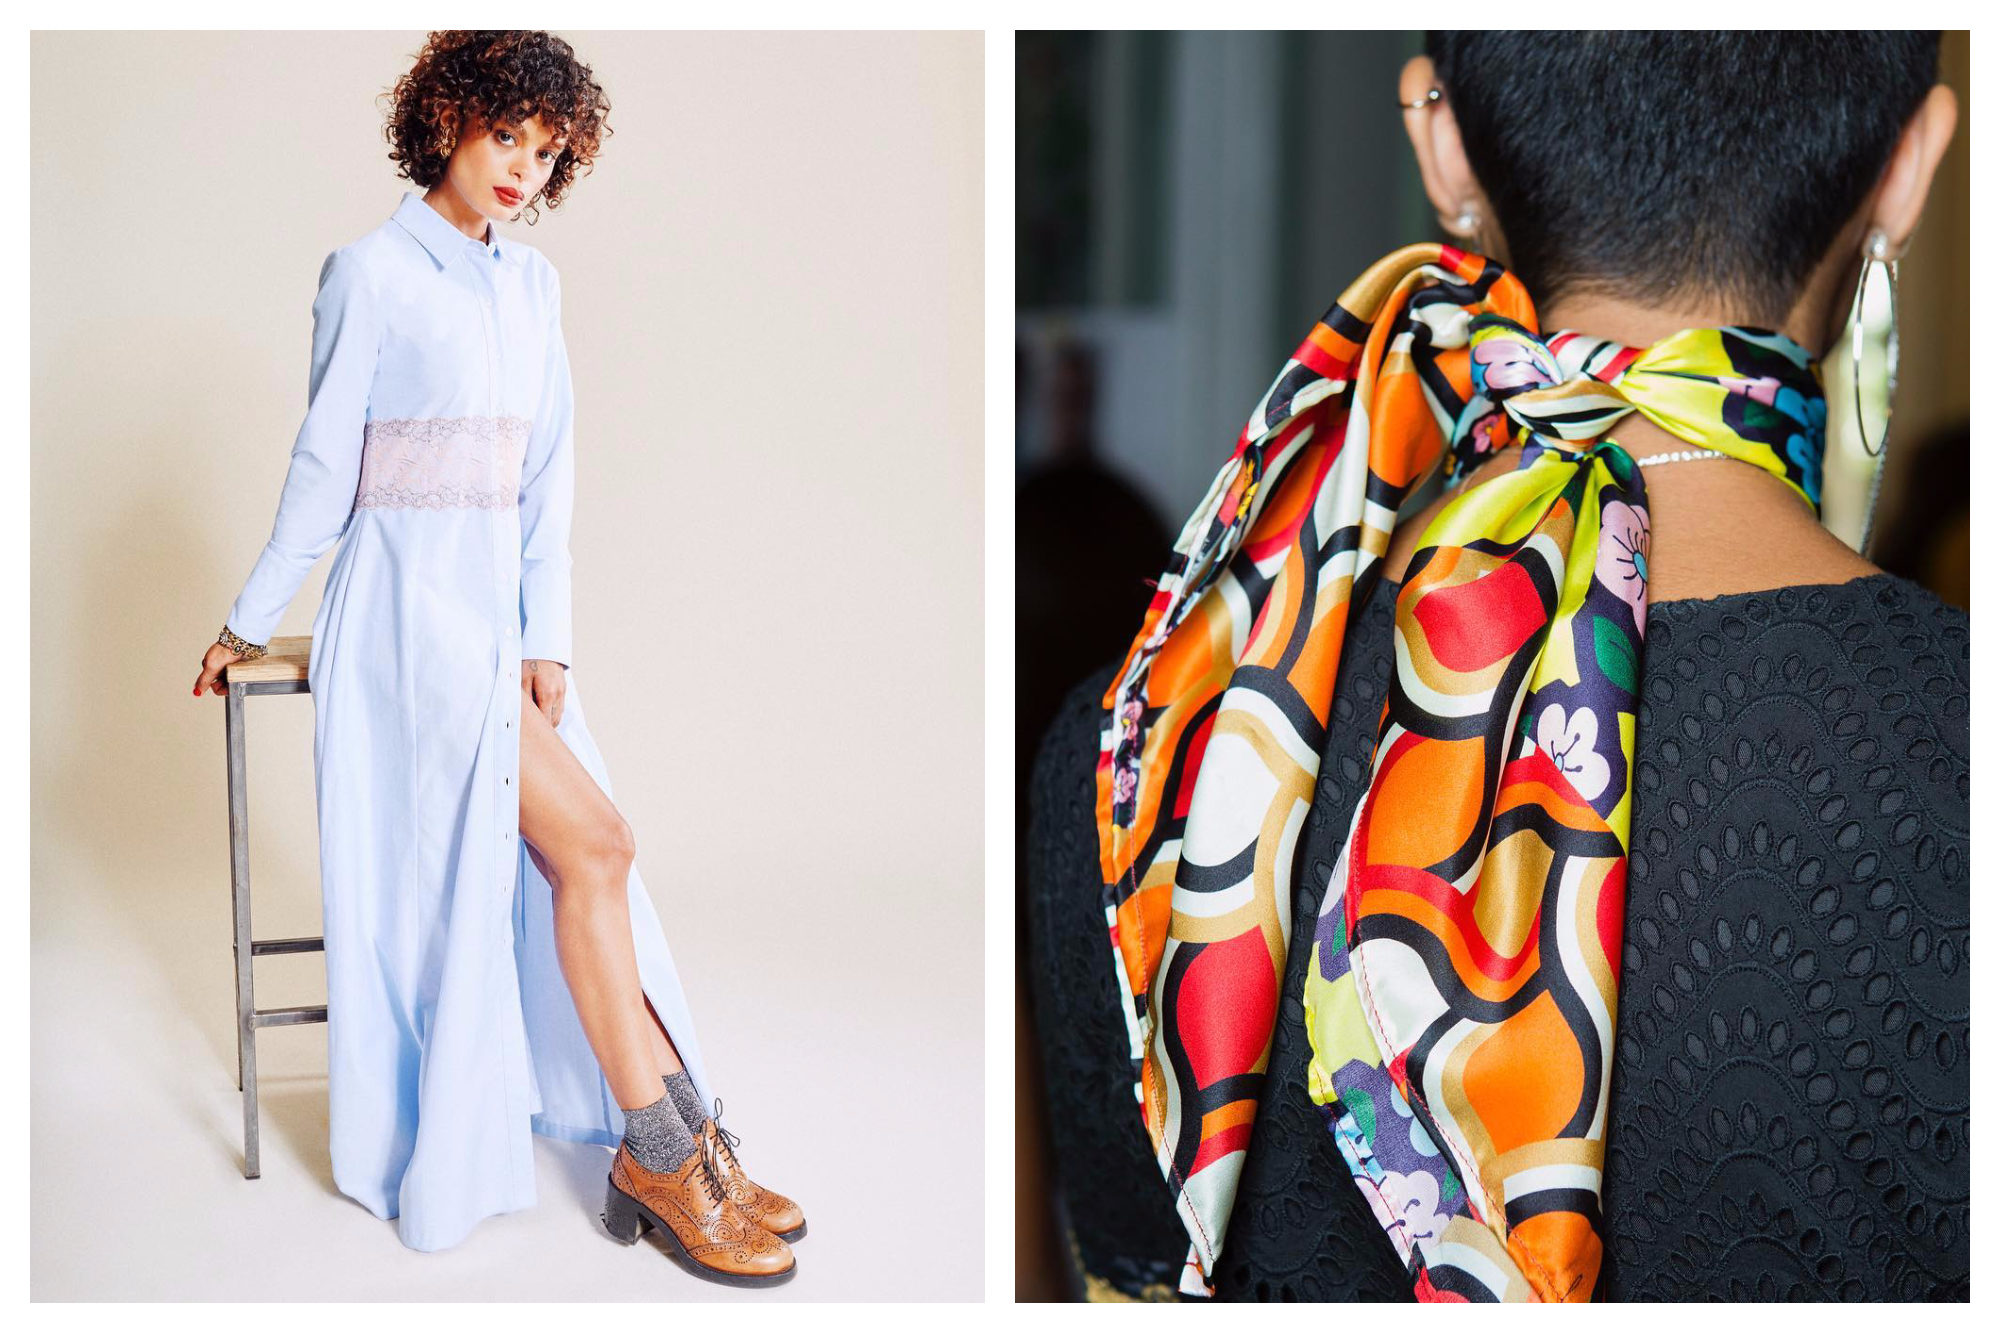 A summer shirt-dress outfit (left). A woman with short hair from the back, wearing a colorful orange-patterned silk scarf (right) by French fashion brand JOUR/NE.